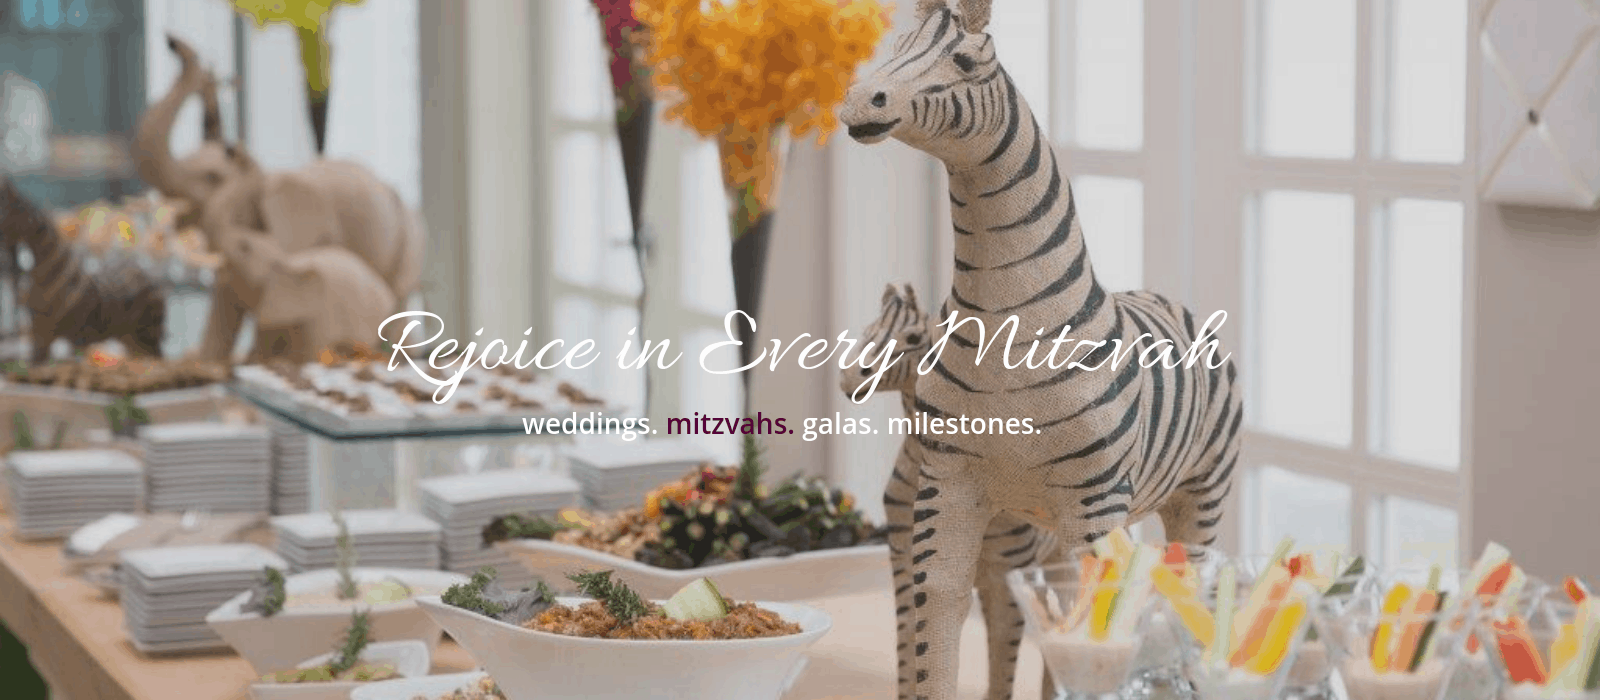 Rejoice in Every Mitzvah Header